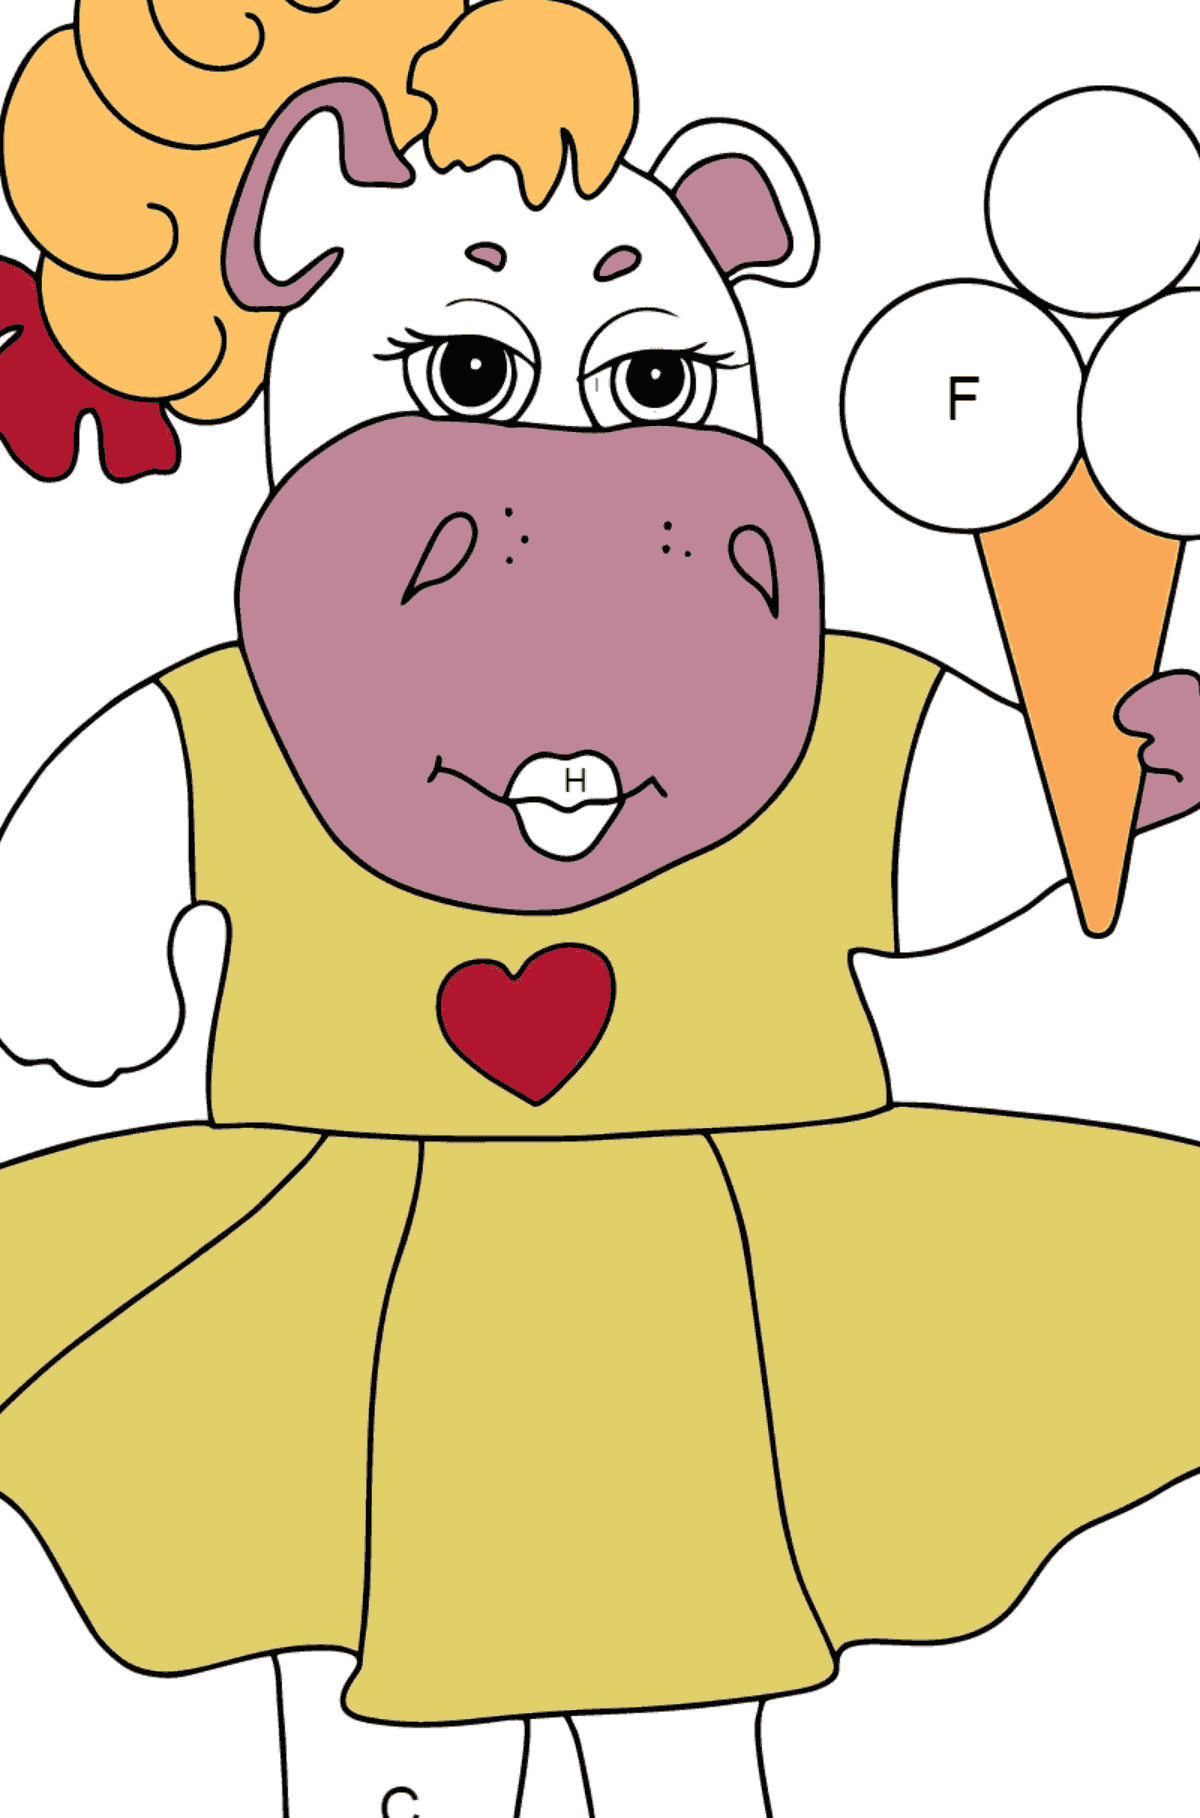 A Hippo in a Fancy Dress is Eating Ice Cream for Kids By Letters